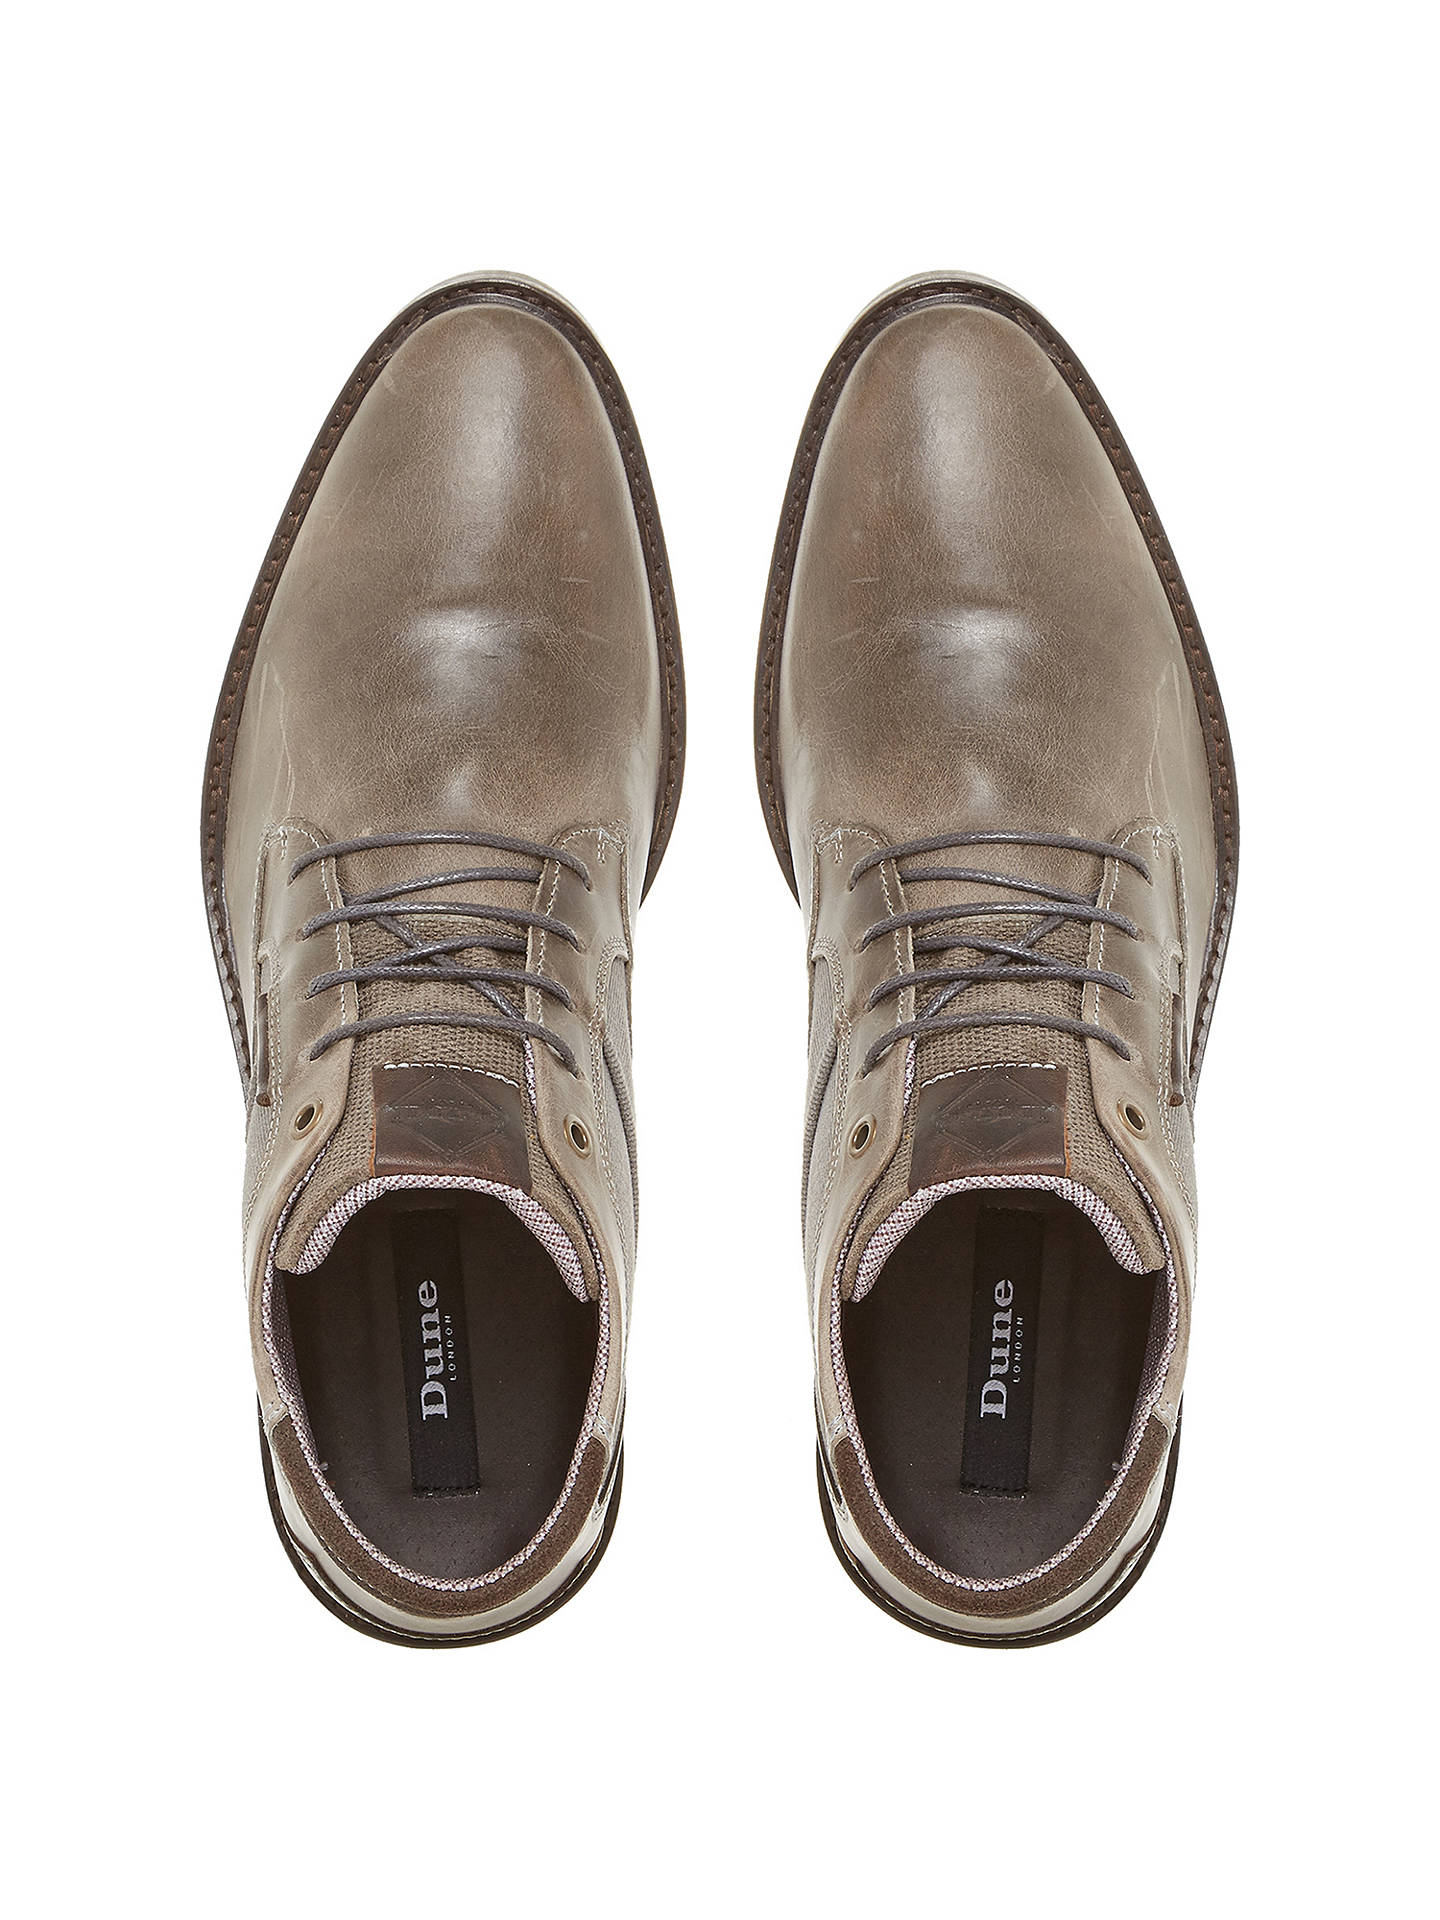 BuyDune Cosmo Faded Casual Chukka Boots, Grey, 7 Online at johnlewis.com